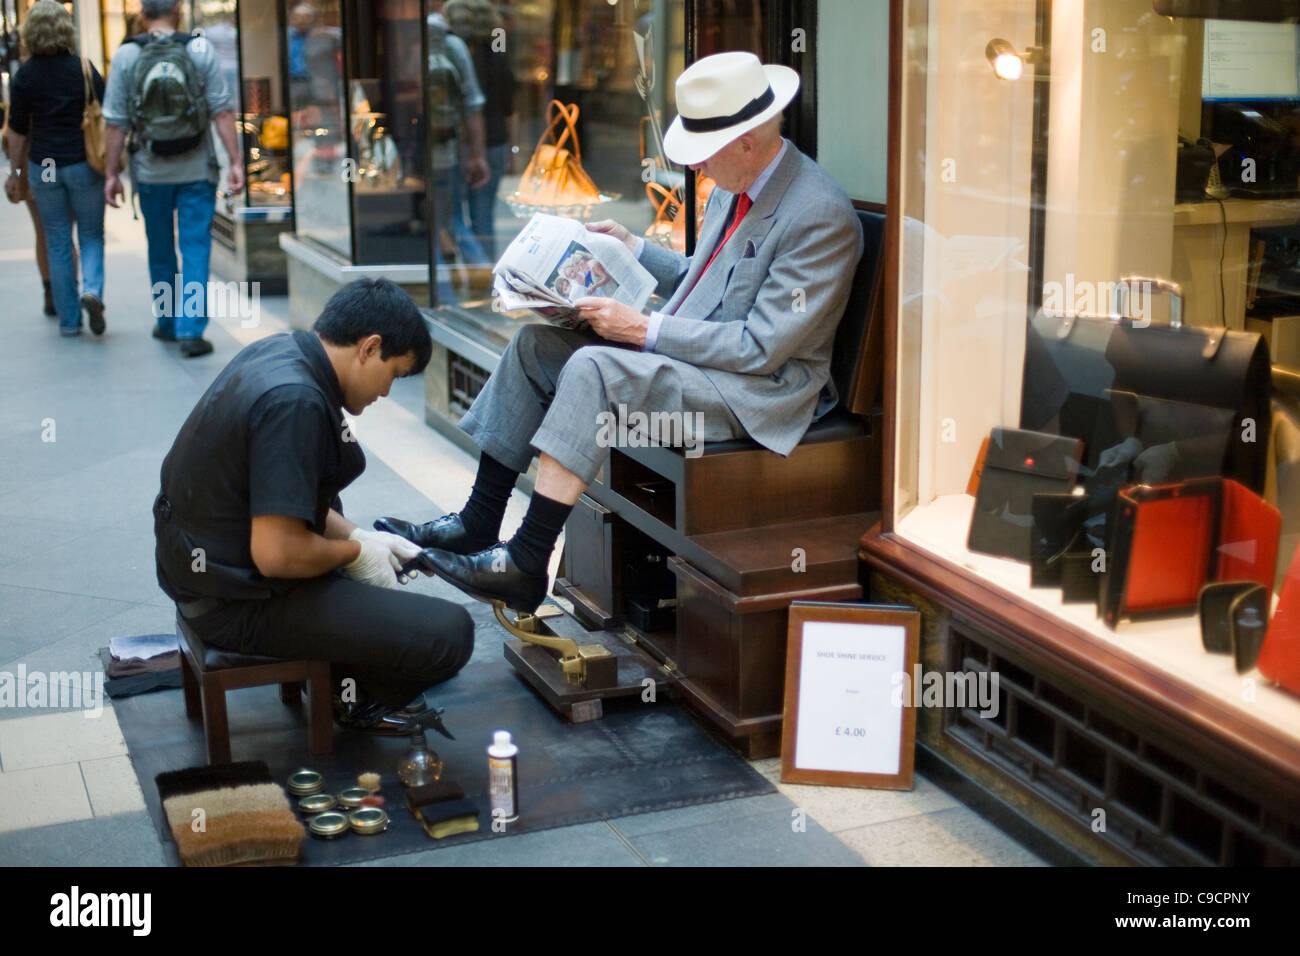 A man has his shoes shined whilst he reads a newspaper in the Burlington Arcade an expensive shopping arcade. London, - Stock Image